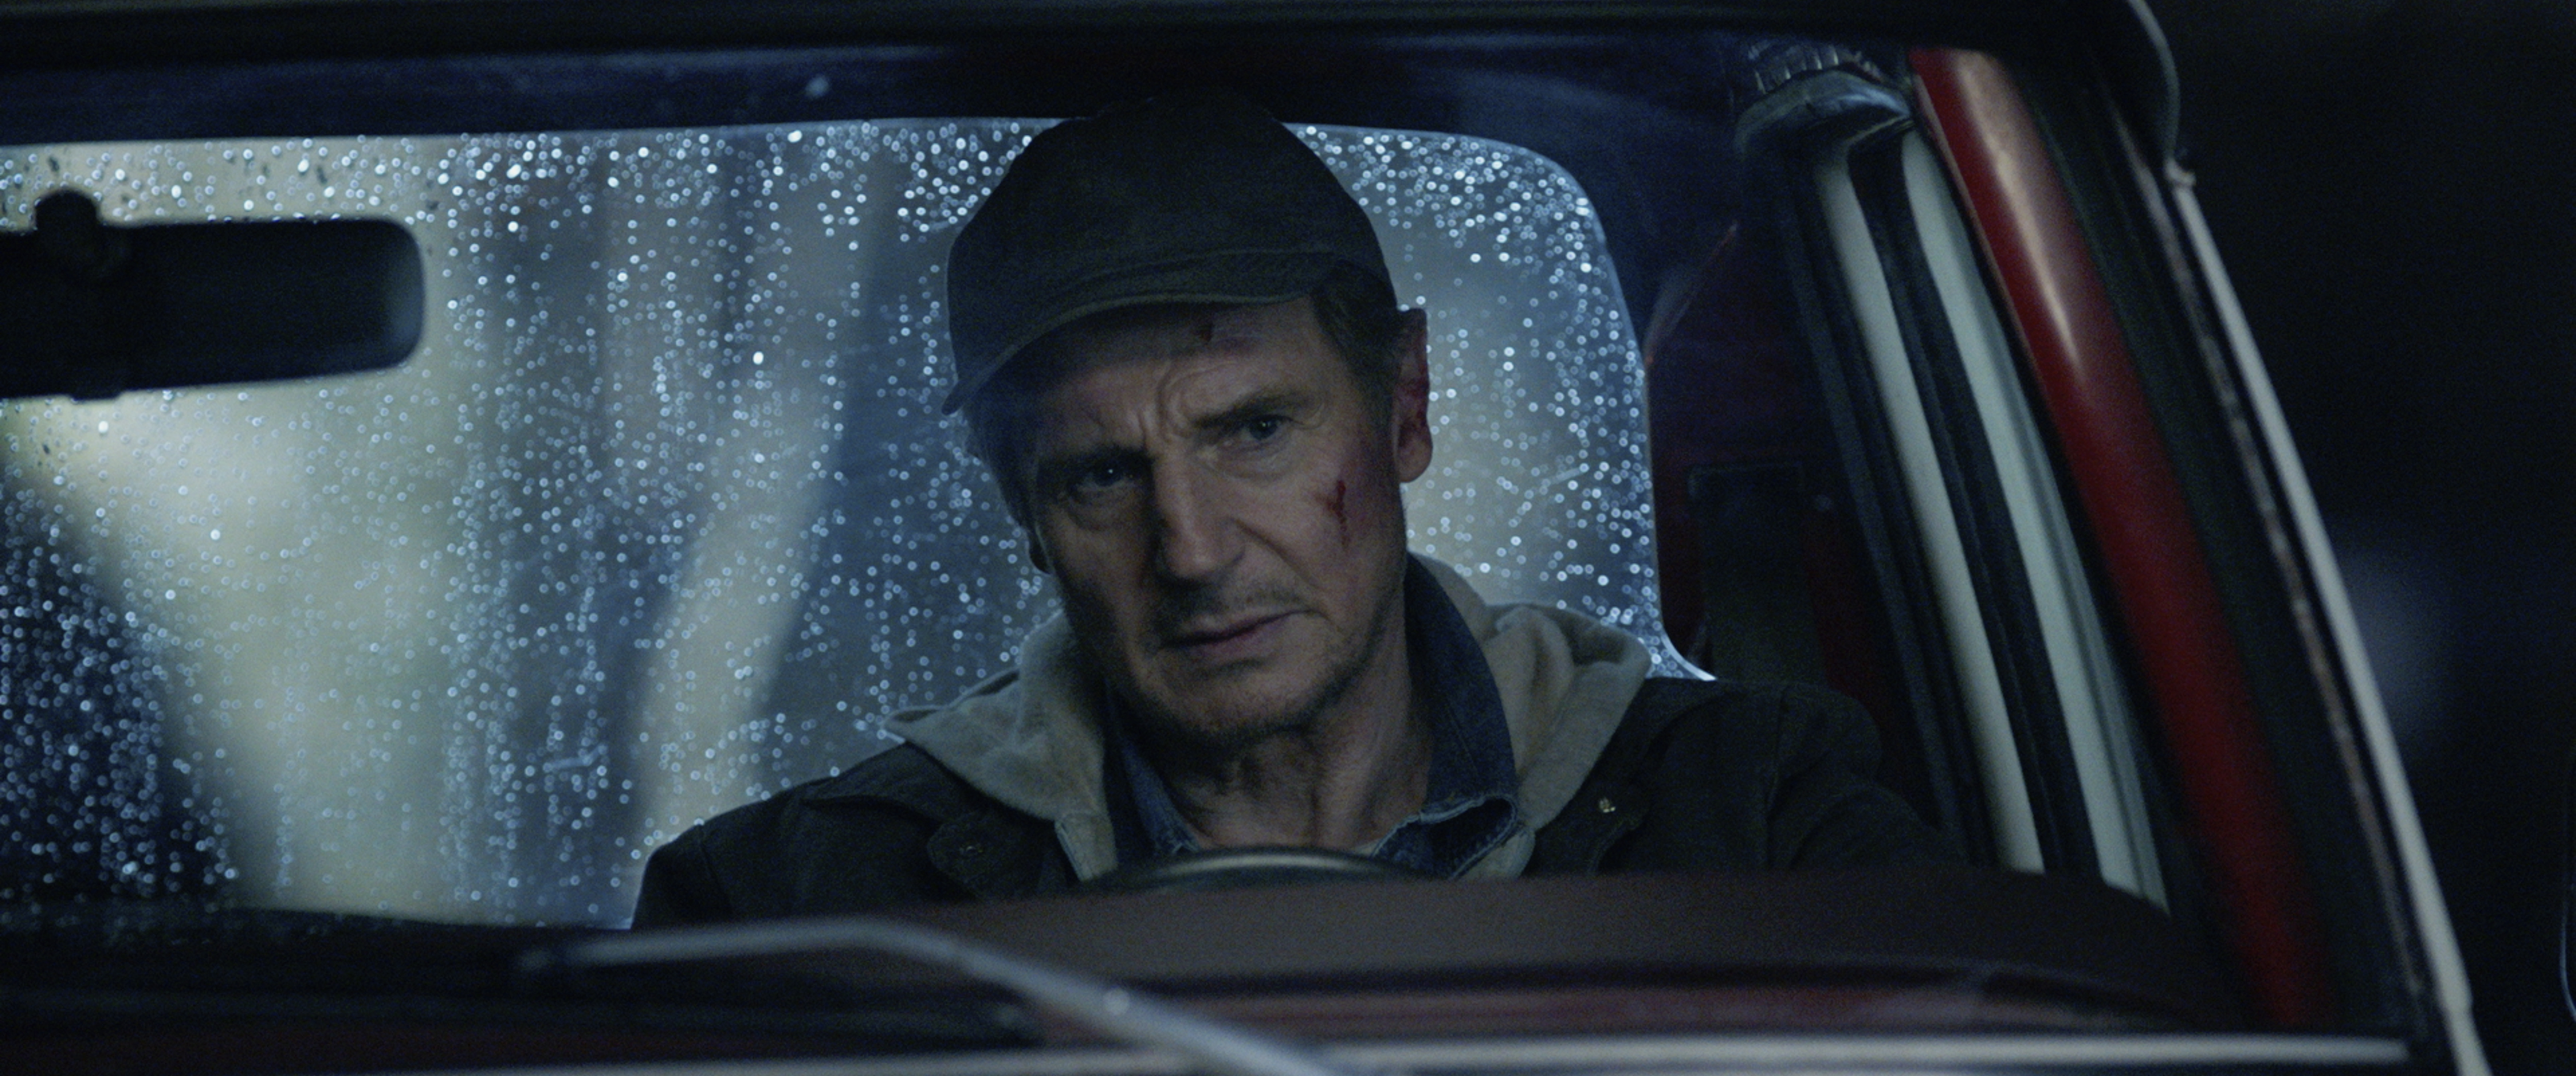 Liam Neeson In Honest Thief Taken By Surprise Well Not Exactly The Boston Globe